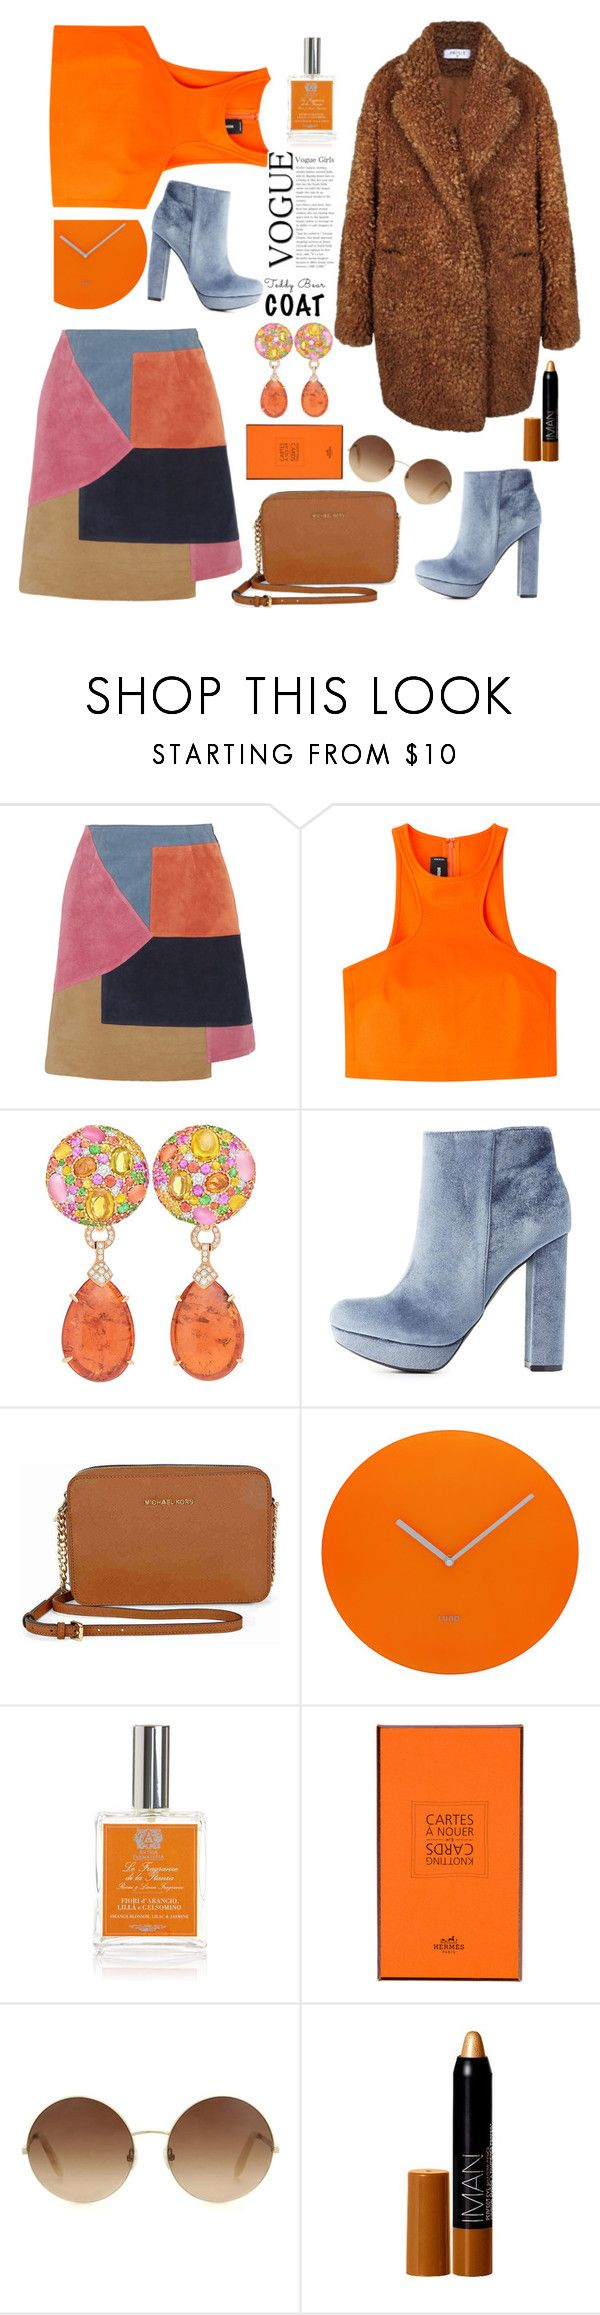 """""""This is so En Vogue"""" by felicitysparks ❤ liked on Polyvore featuring M.i.h Jeans, Dsquared2, Margot McKinney, Charlotte Russe, Michael Kors, Lund London, Antica Farmacista, Hermès, Victoria Beckham and Iman"""